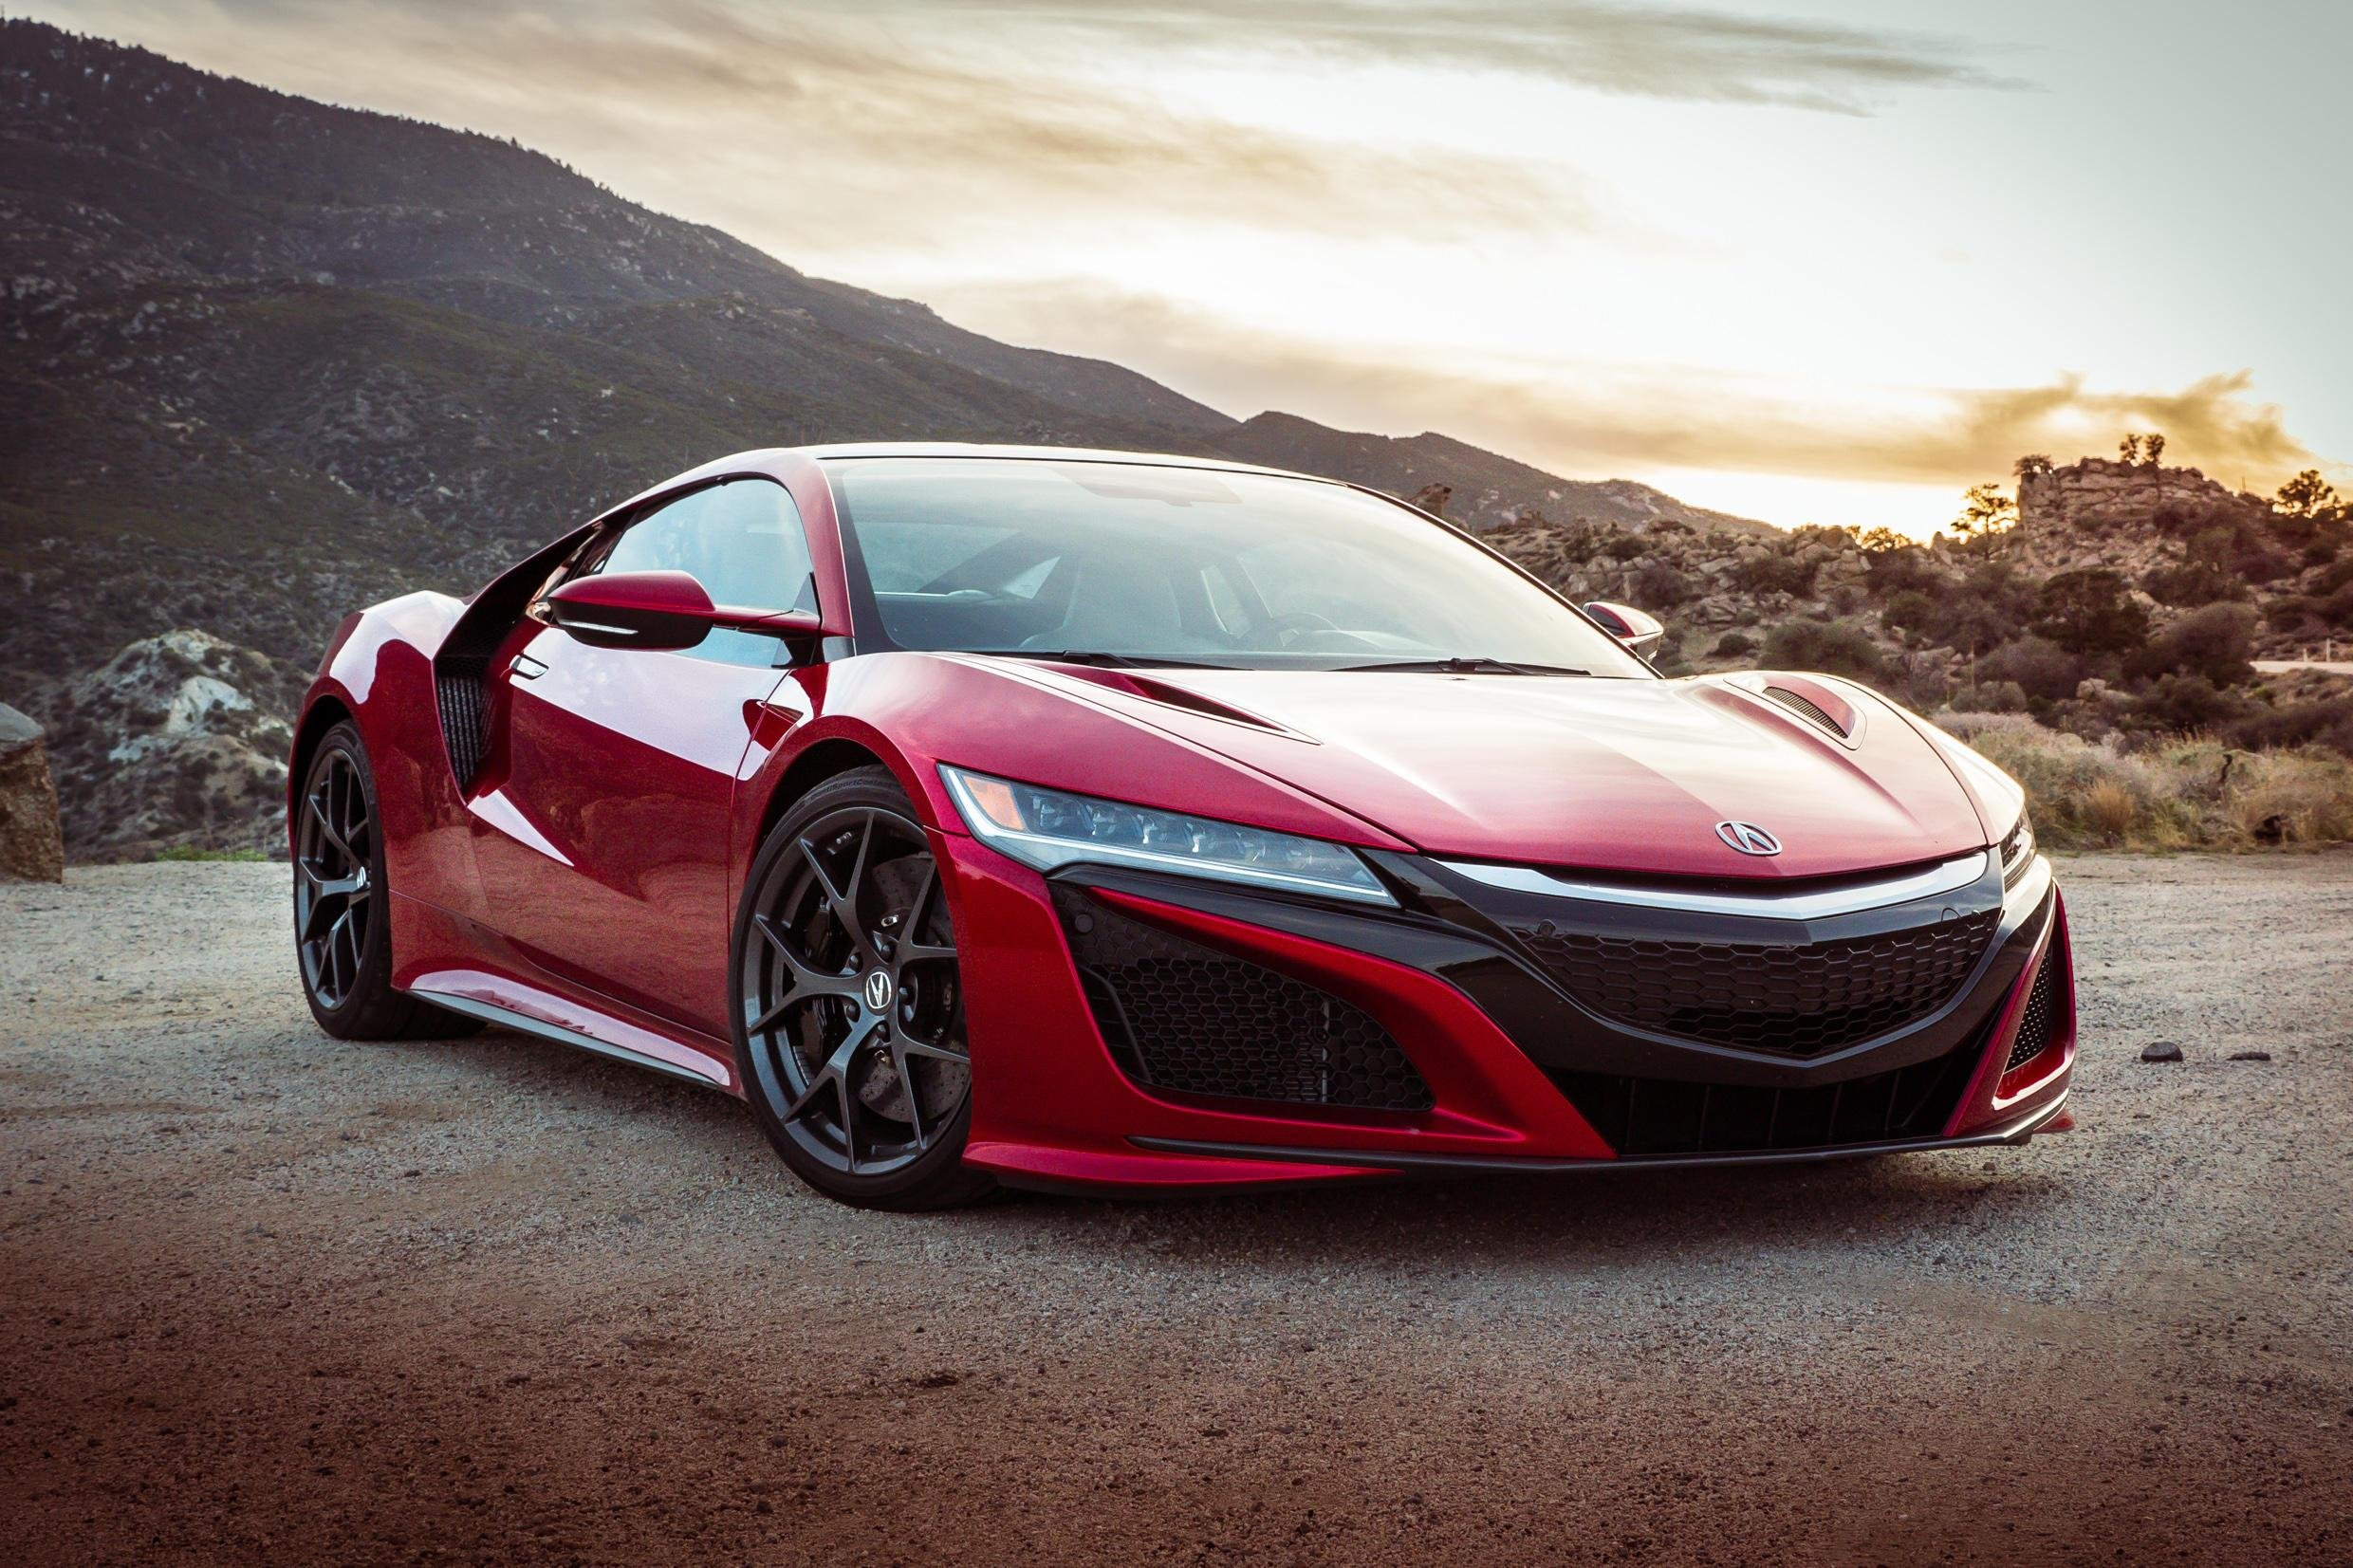 Latest 2017 Acura Nsx Hd Cars 4K Wallpapers Images Free Download